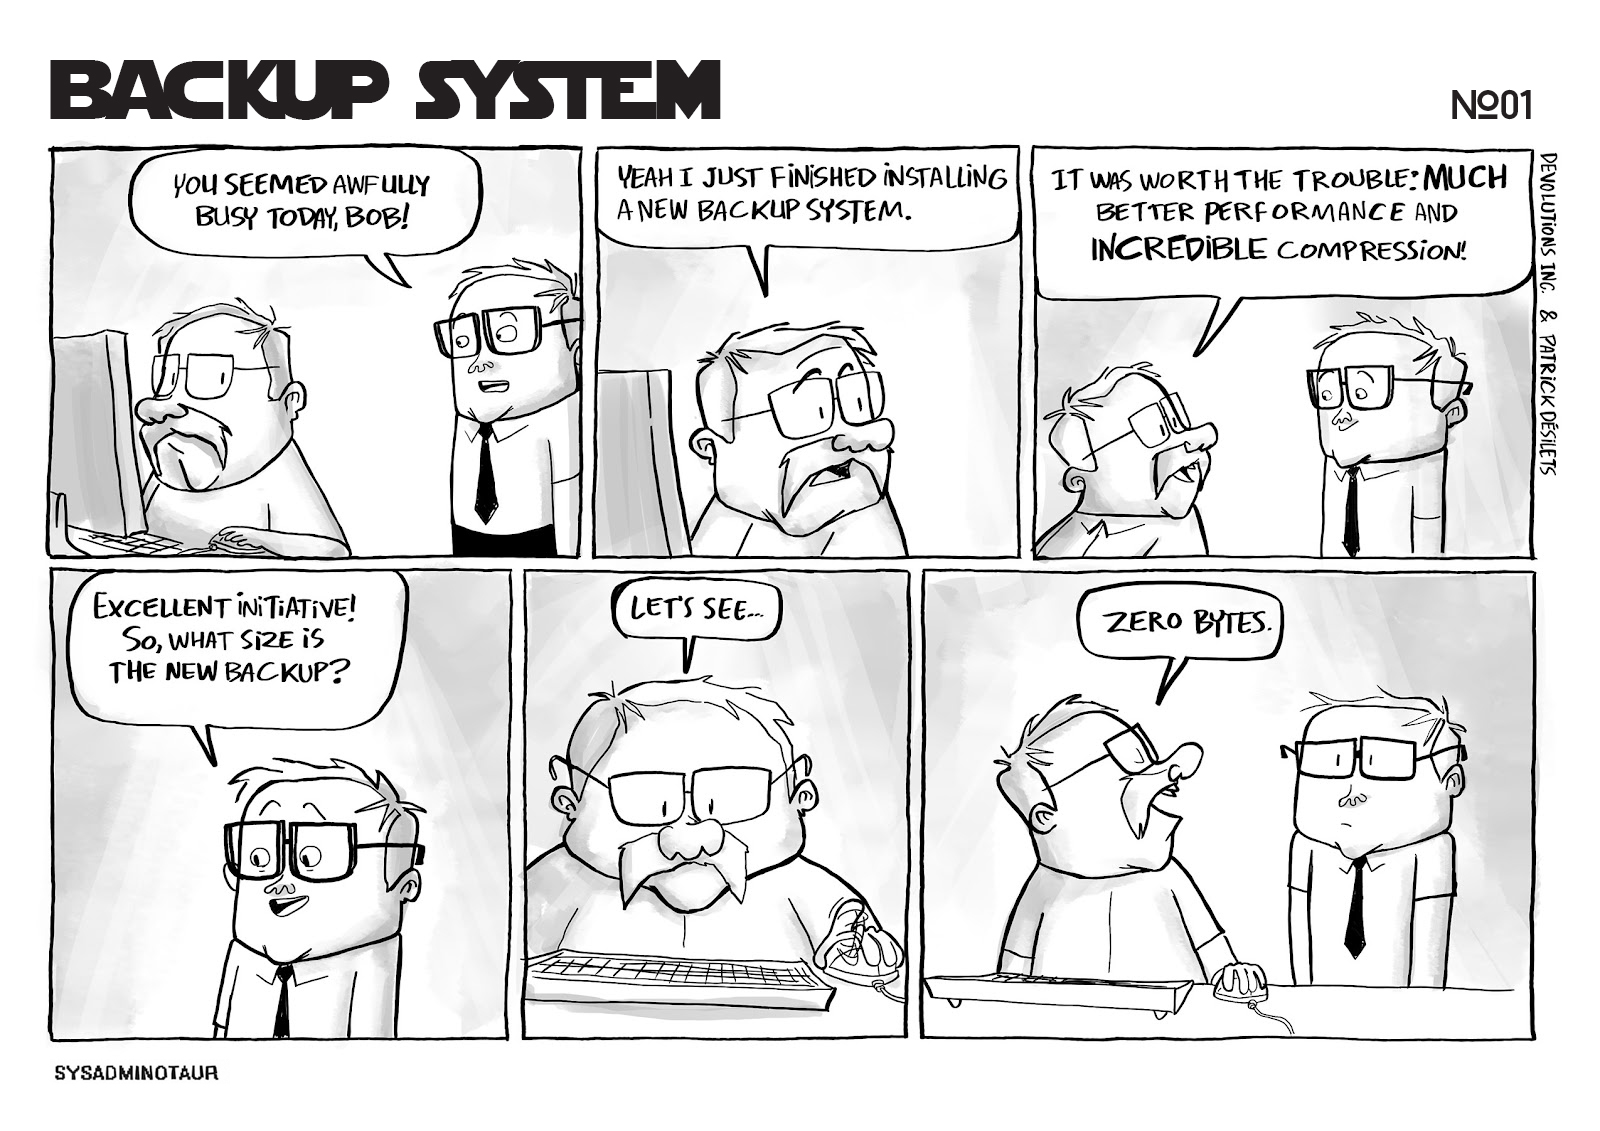 sysadminotaur-001-backup-system